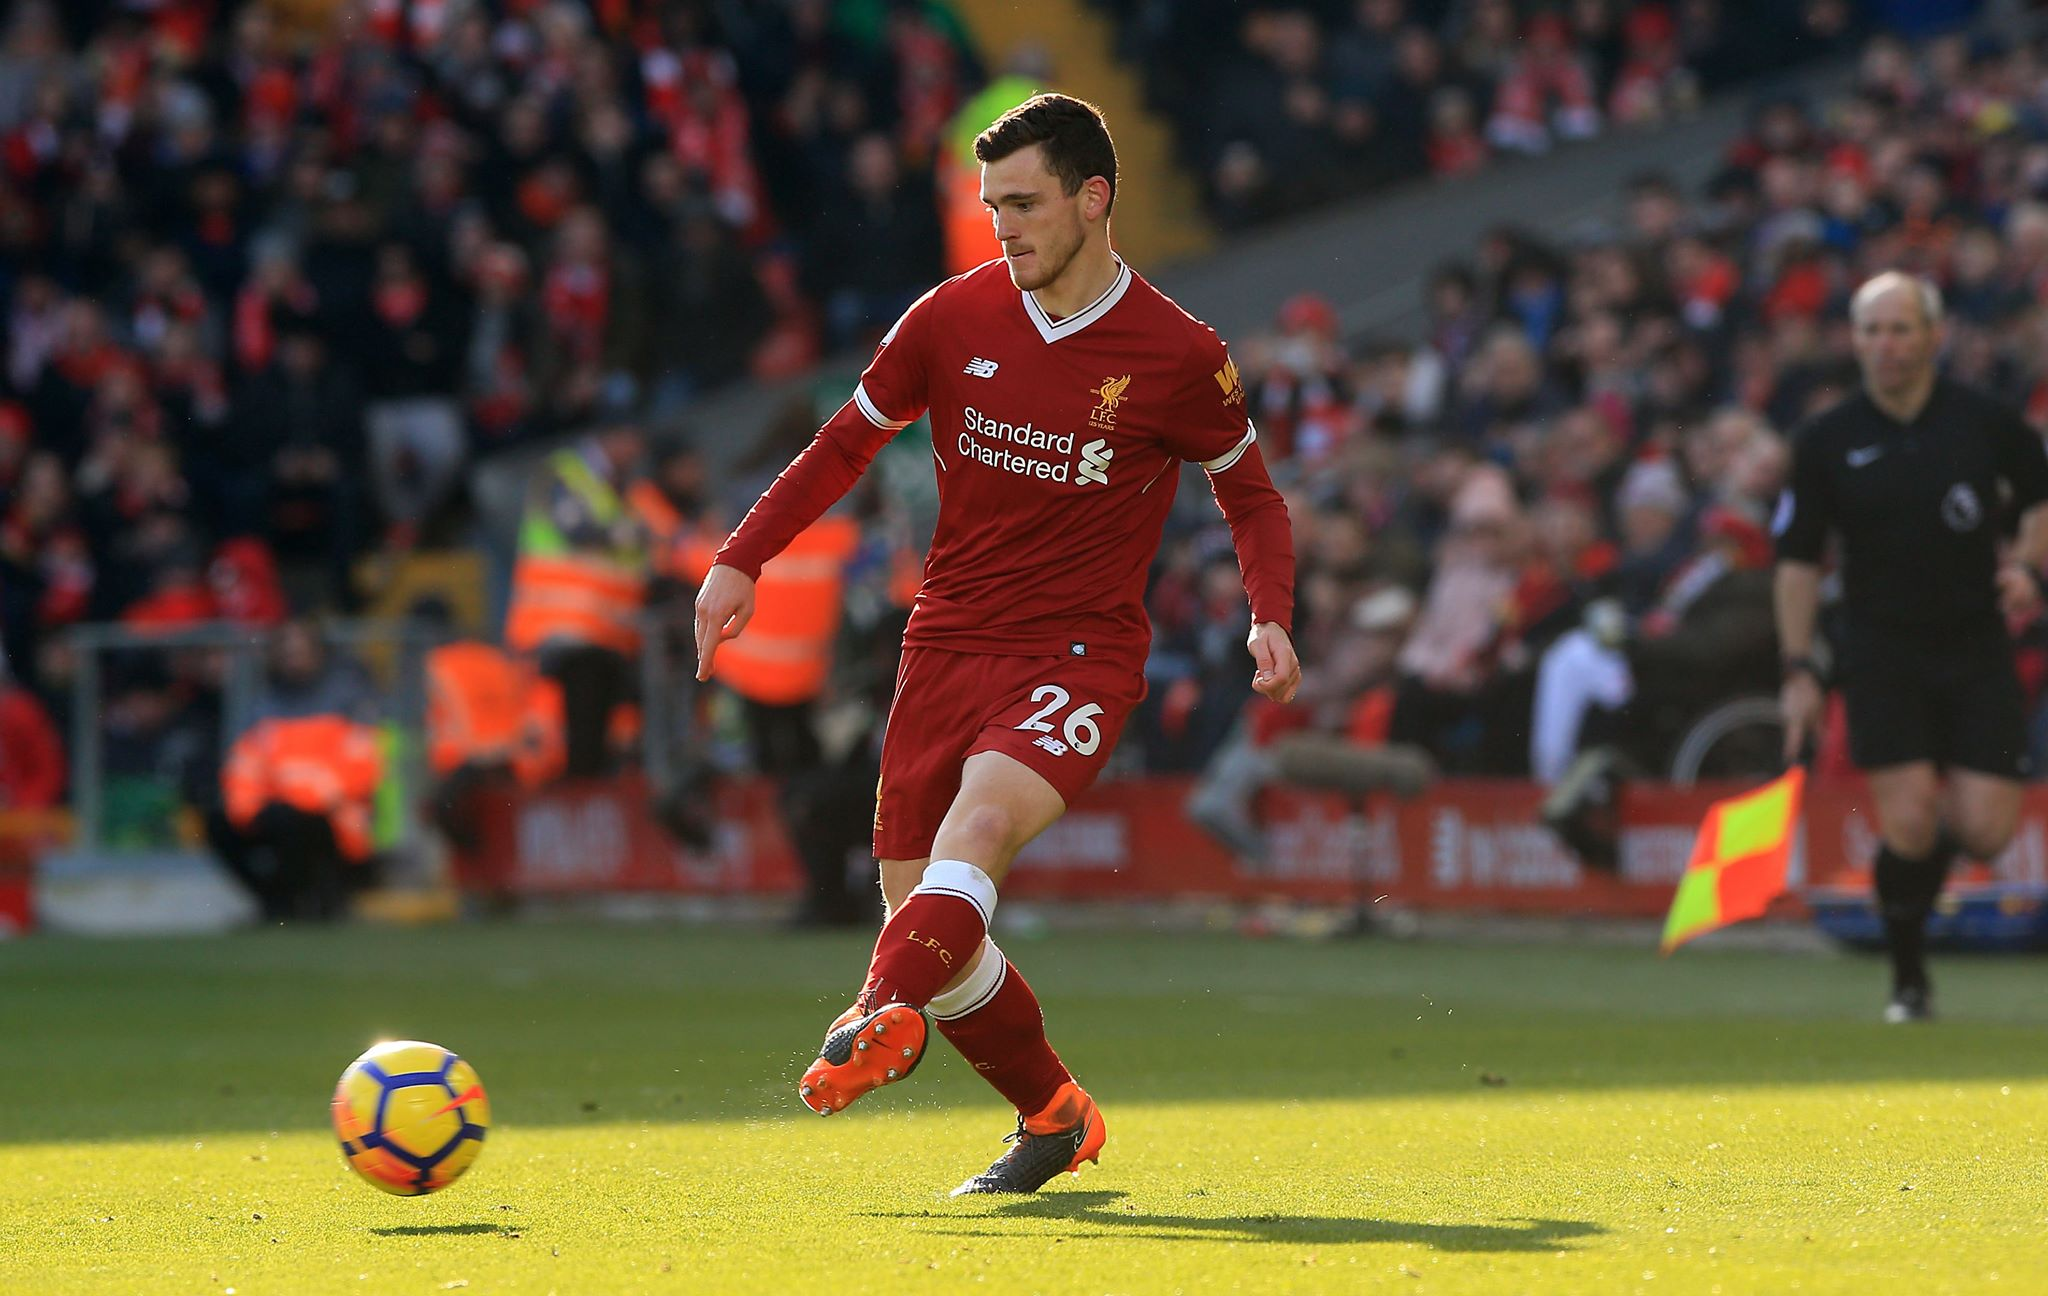 Robertson in action for Liverpool. Image: PA